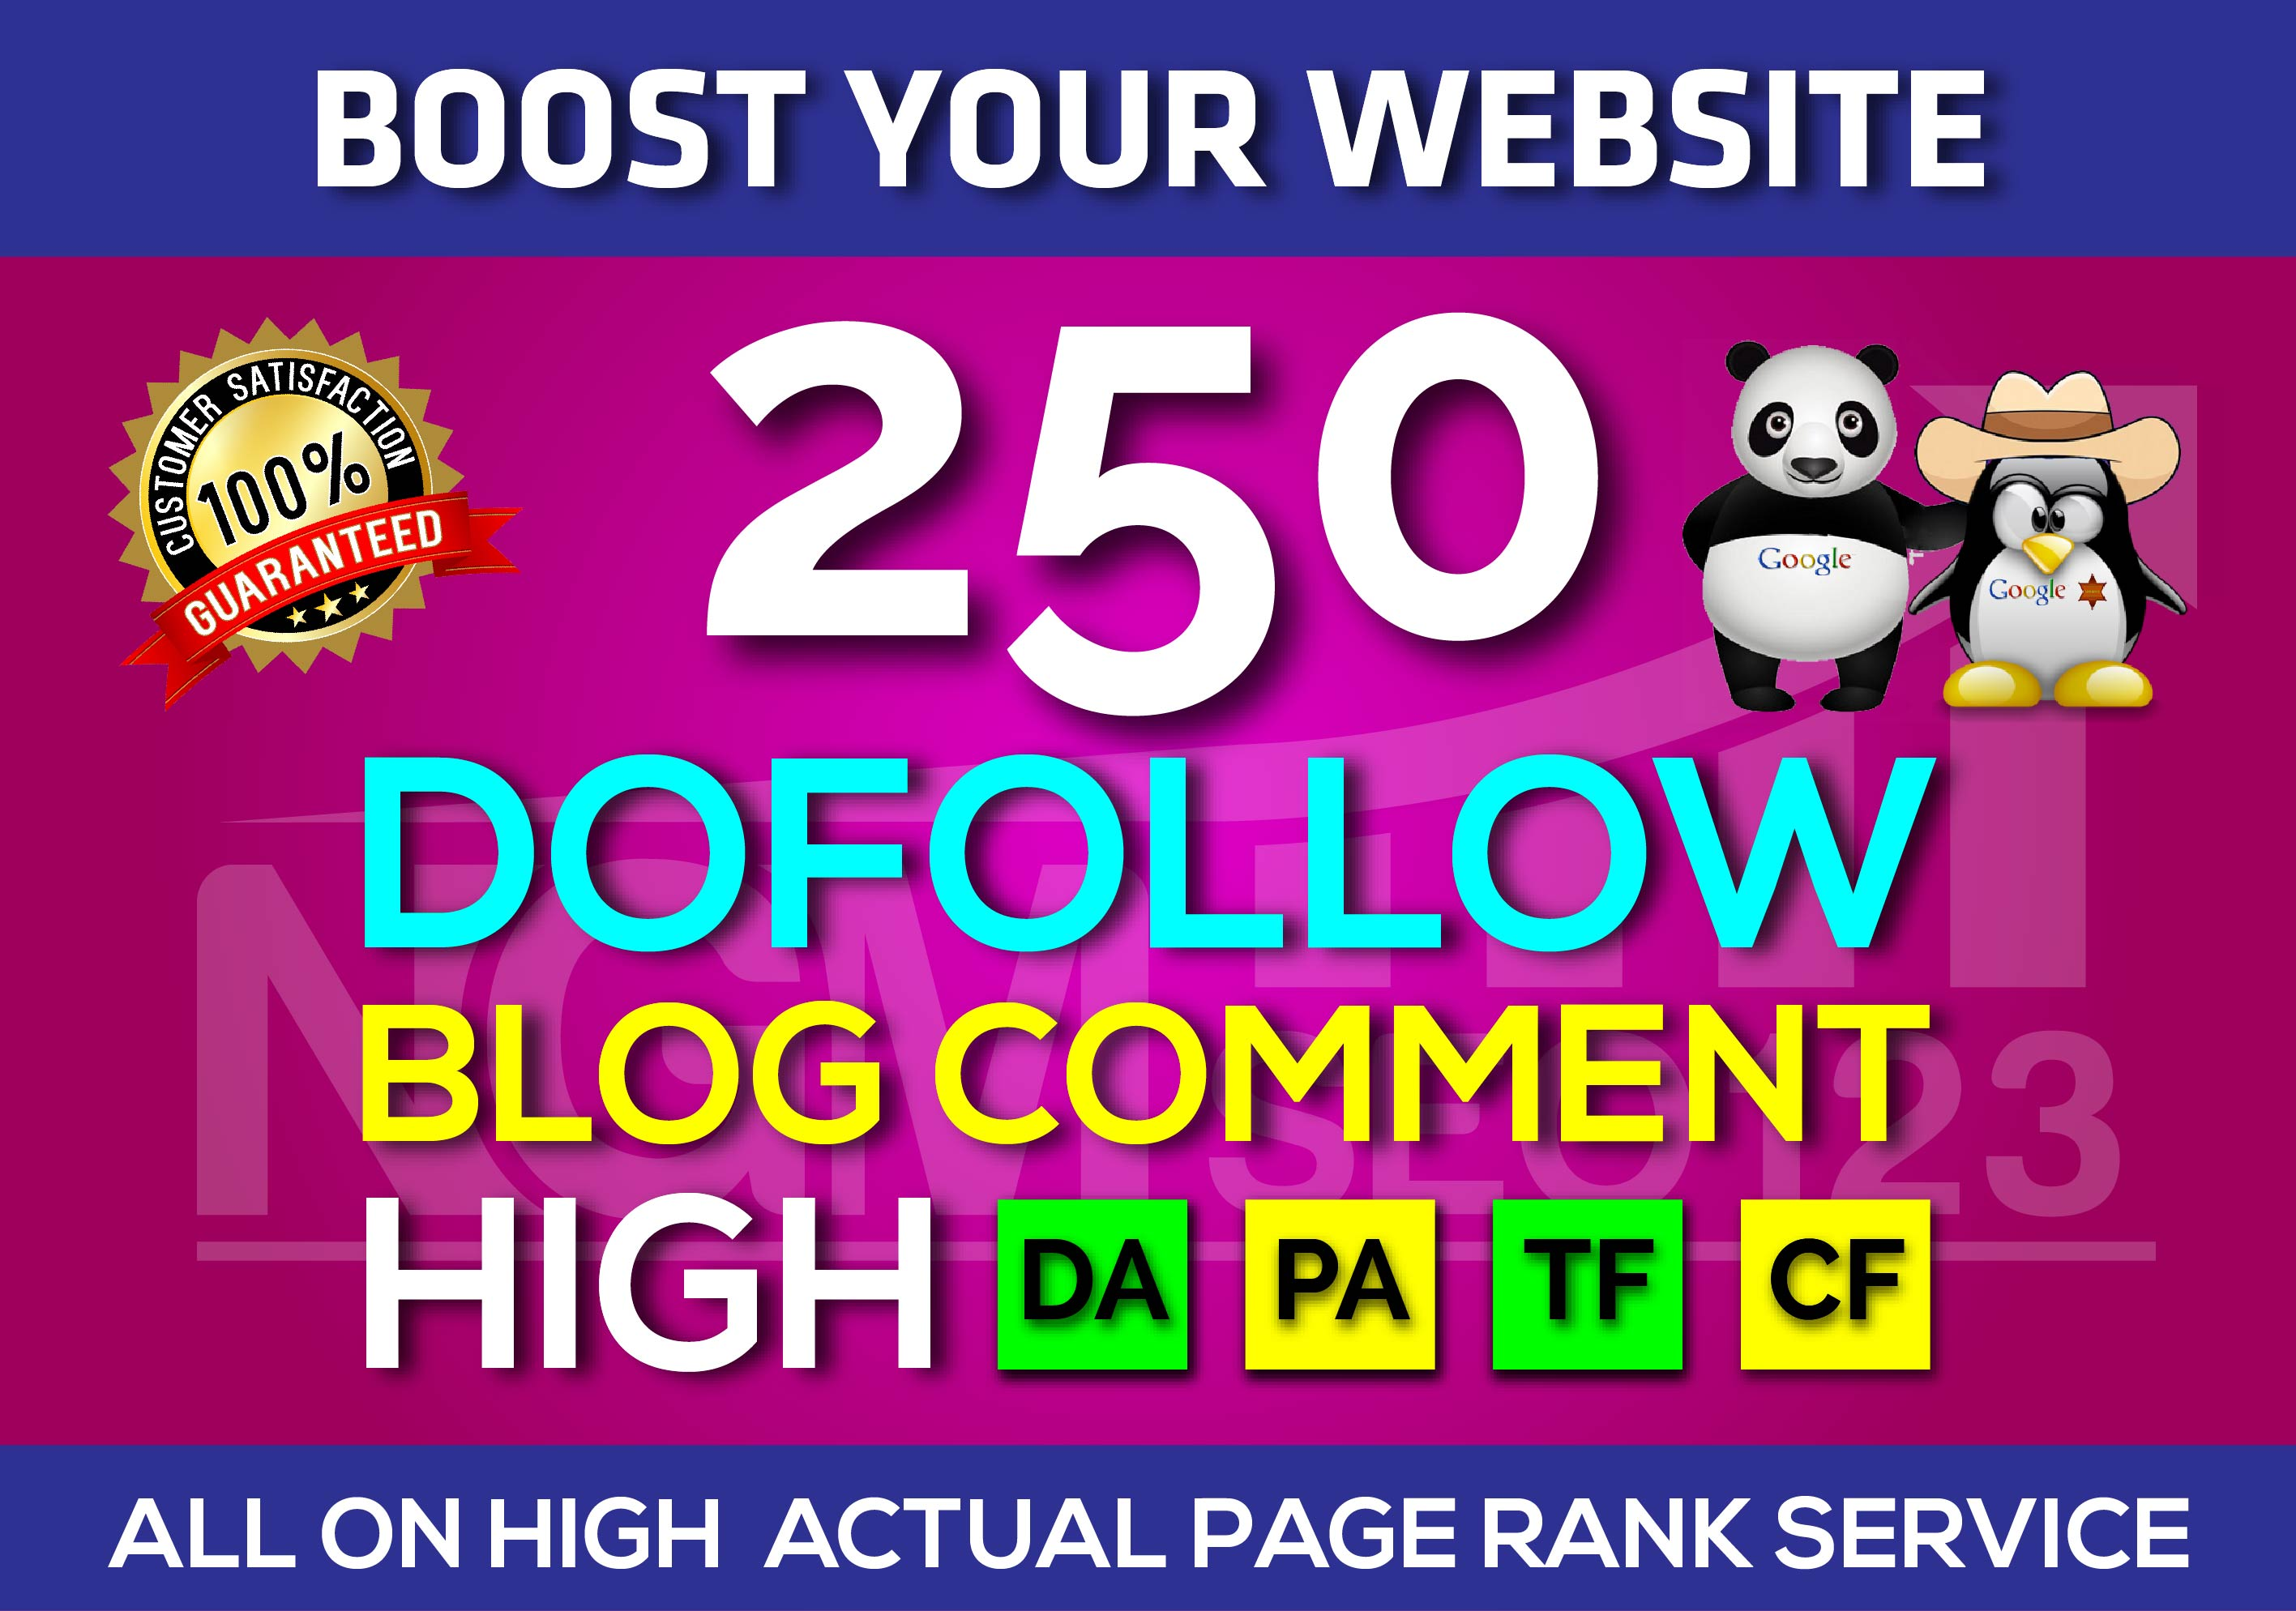 I will do 250 Dofollow Blog Comment Backlinks SEO LOW OBL